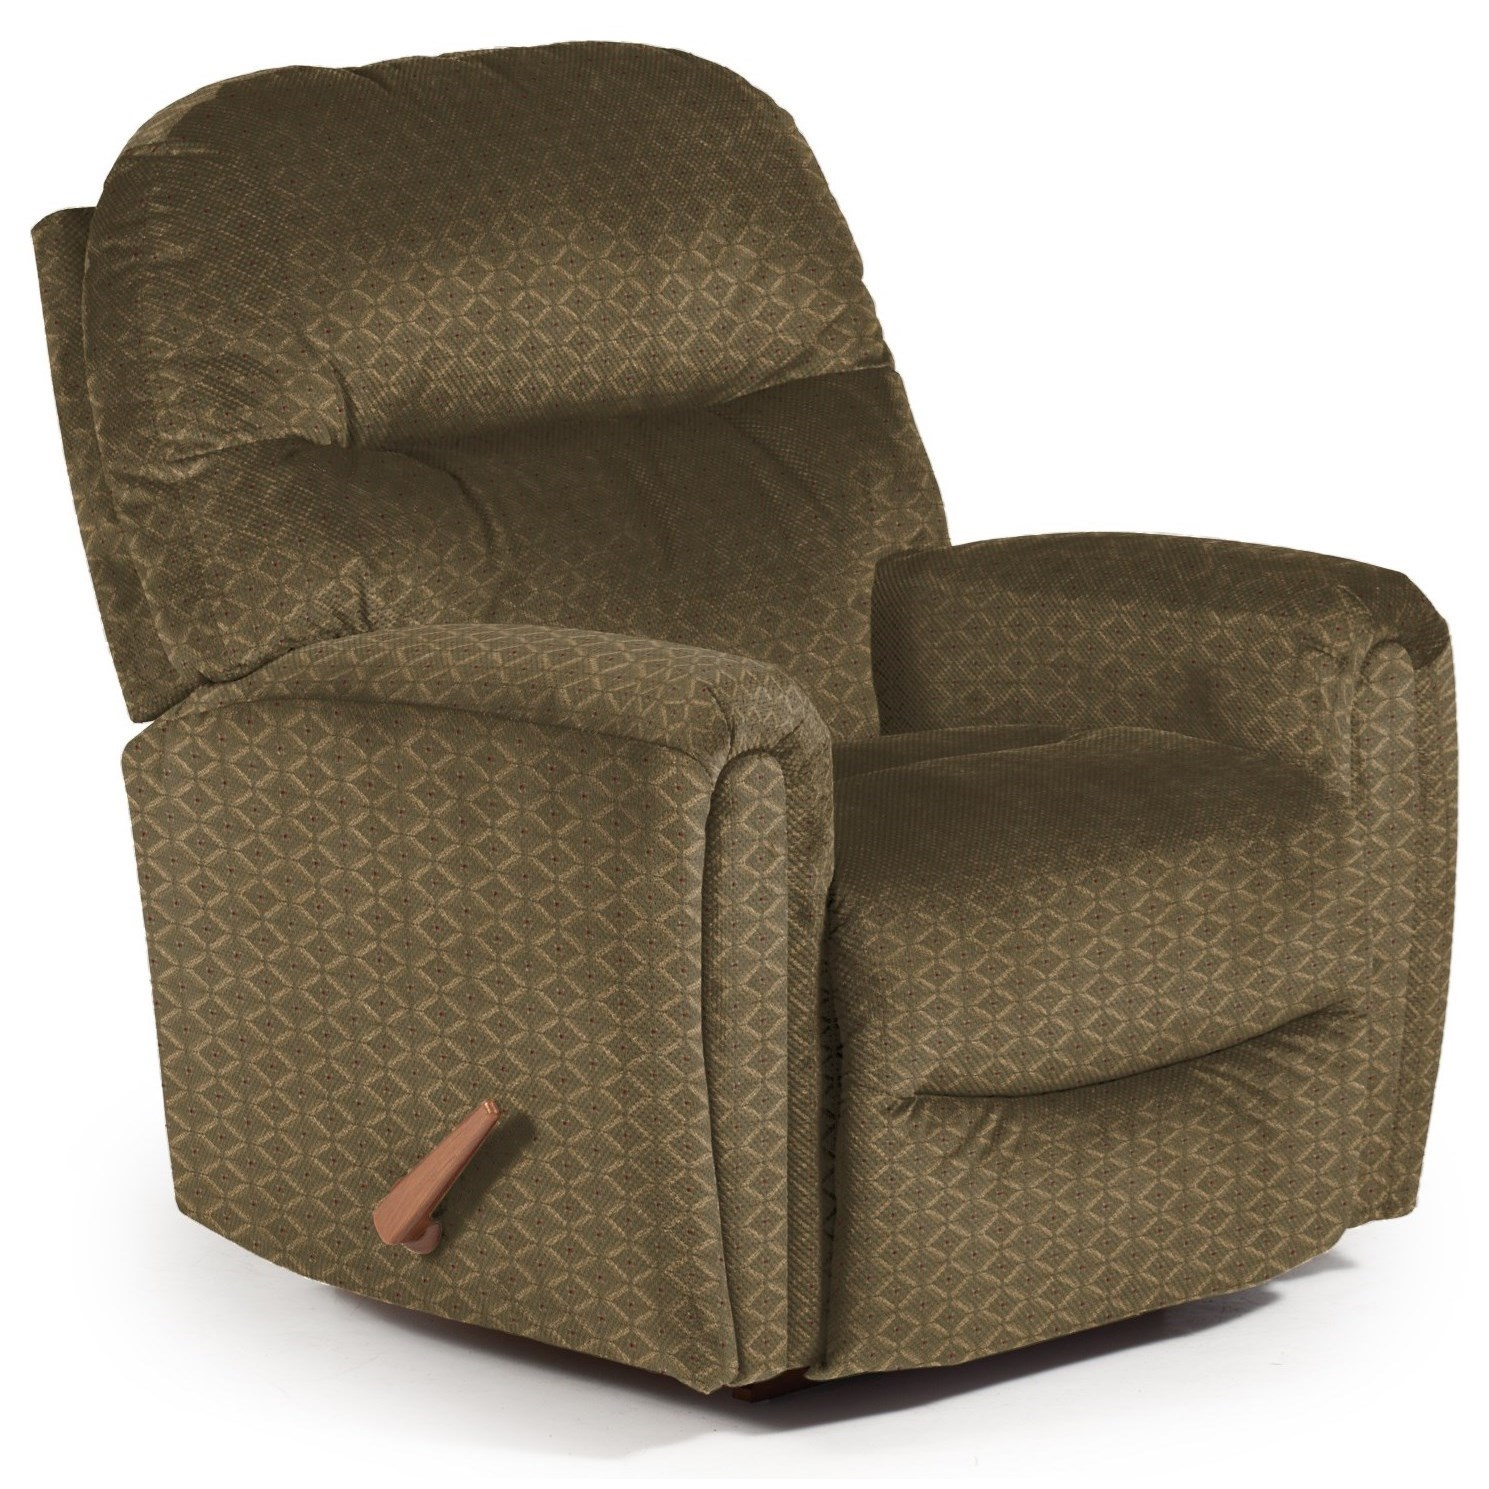 Best Home Furnishings Recliners - Medium Markson Power Space Saver Recliner - Item Number: 653357800-18021